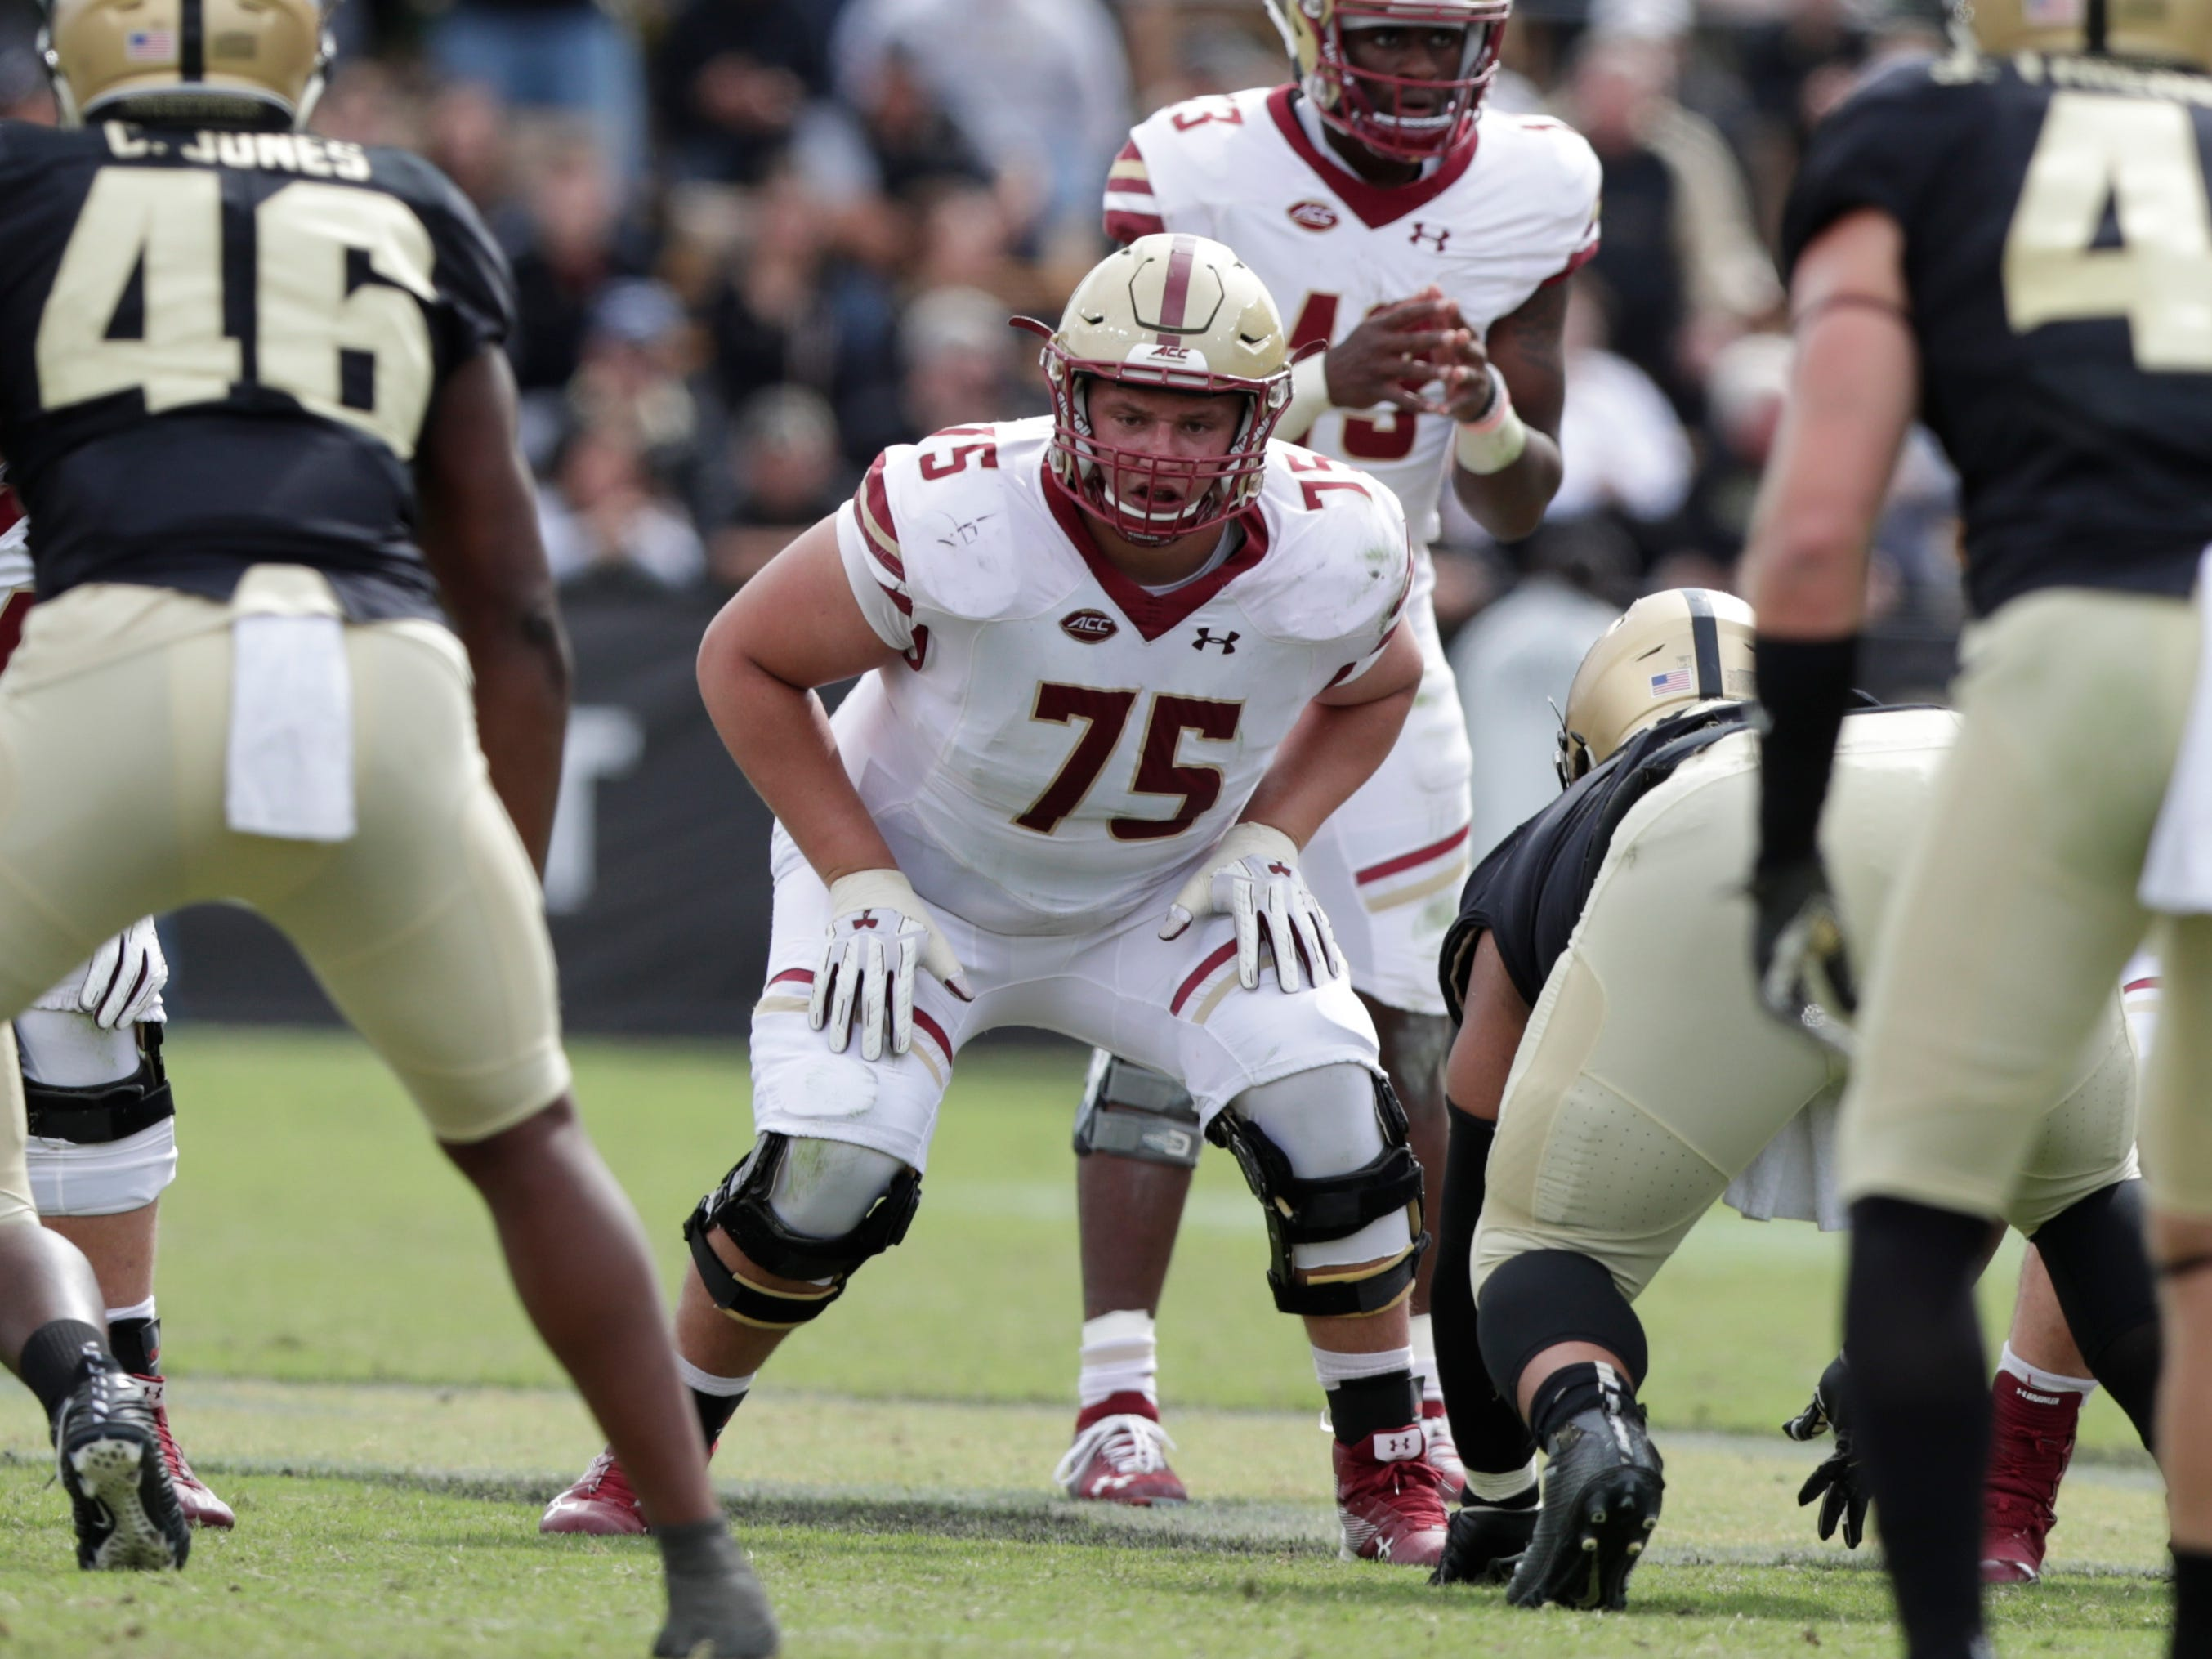 39. Chris Lindstrom, OL, Boston College: Powerful interior lineman with the necessary footwork to get to the second level and handle pulling assignments. There's going to be question marks about his pass protection, given Boston College's offensive system, but Lindstrom appears to be solid in every regard, especially clearing holes in the run game.